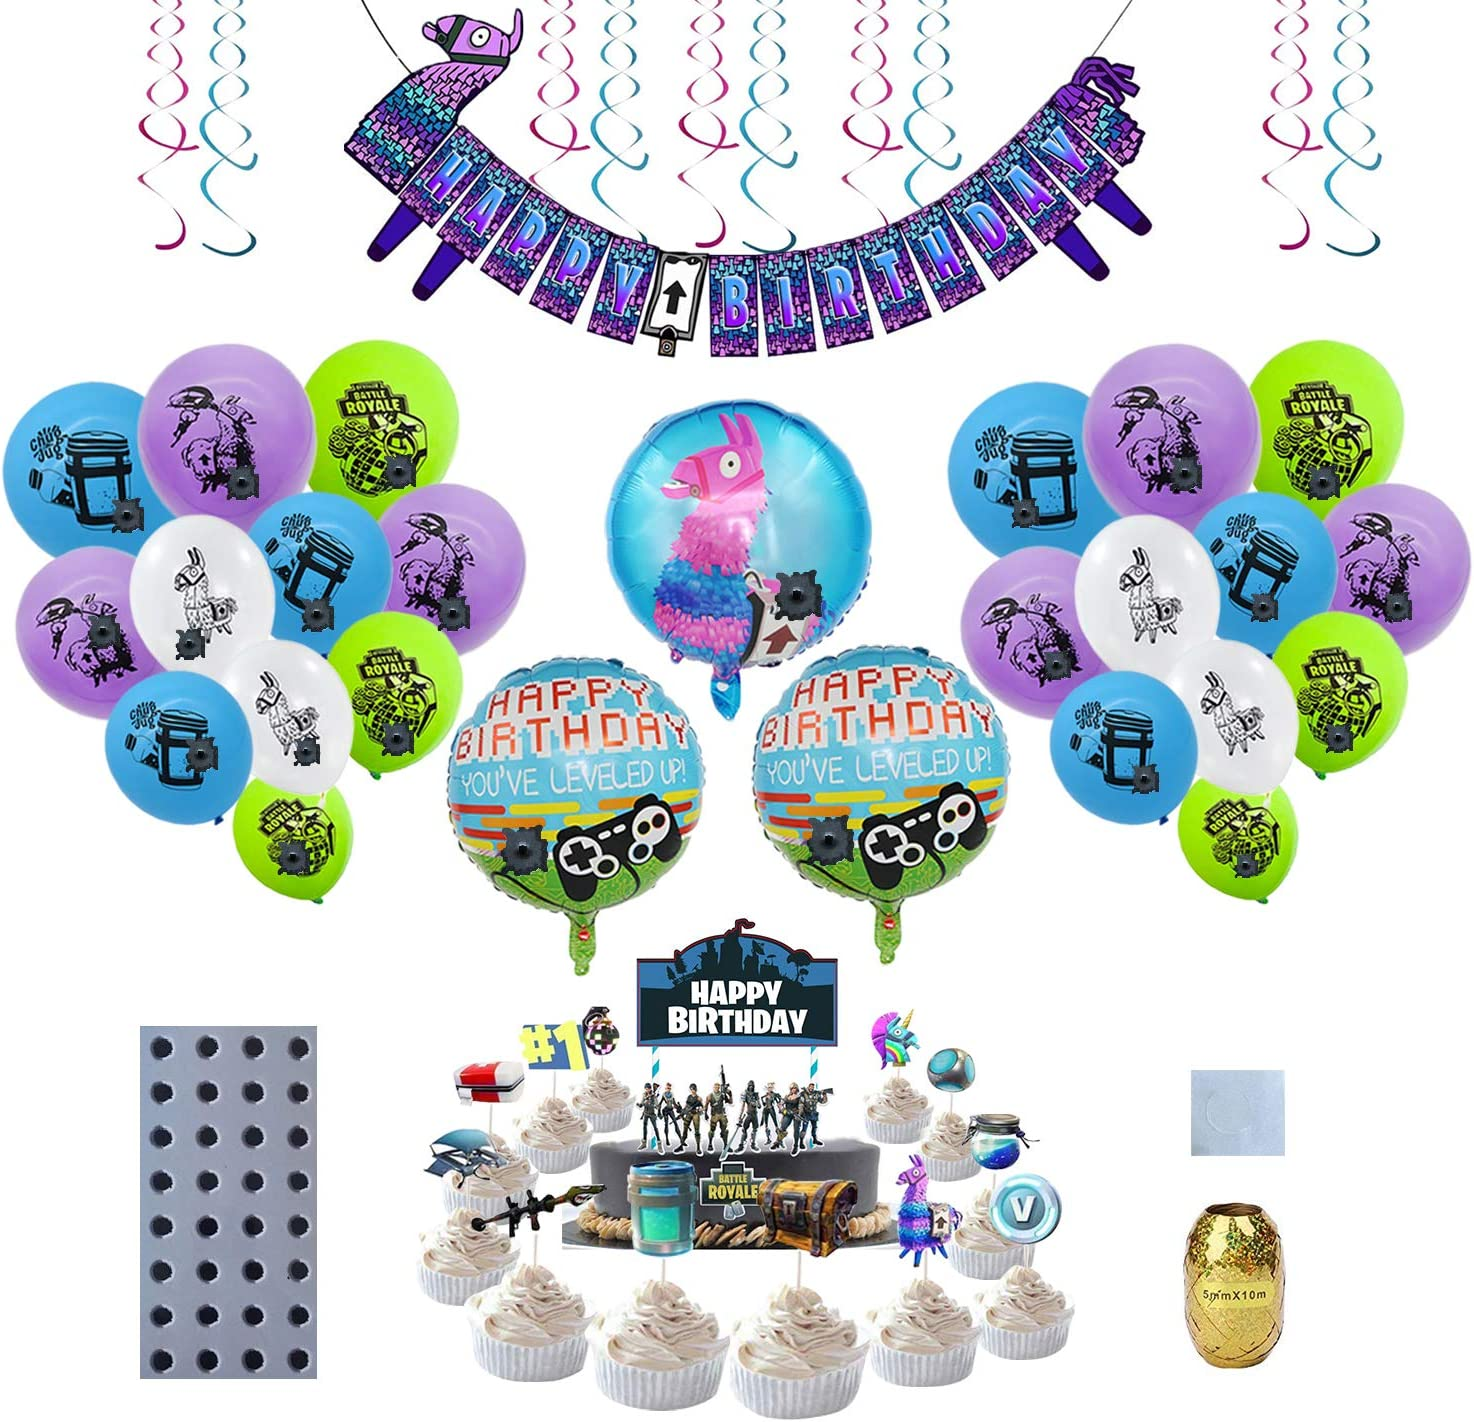 Gamer Party Supplies, Video Game Party Supplies, Including Llama Happy Birthday Banner, Gamer Cake Topper/Cupcake Toppers, Gaming Balloons for Kids/Game Fans